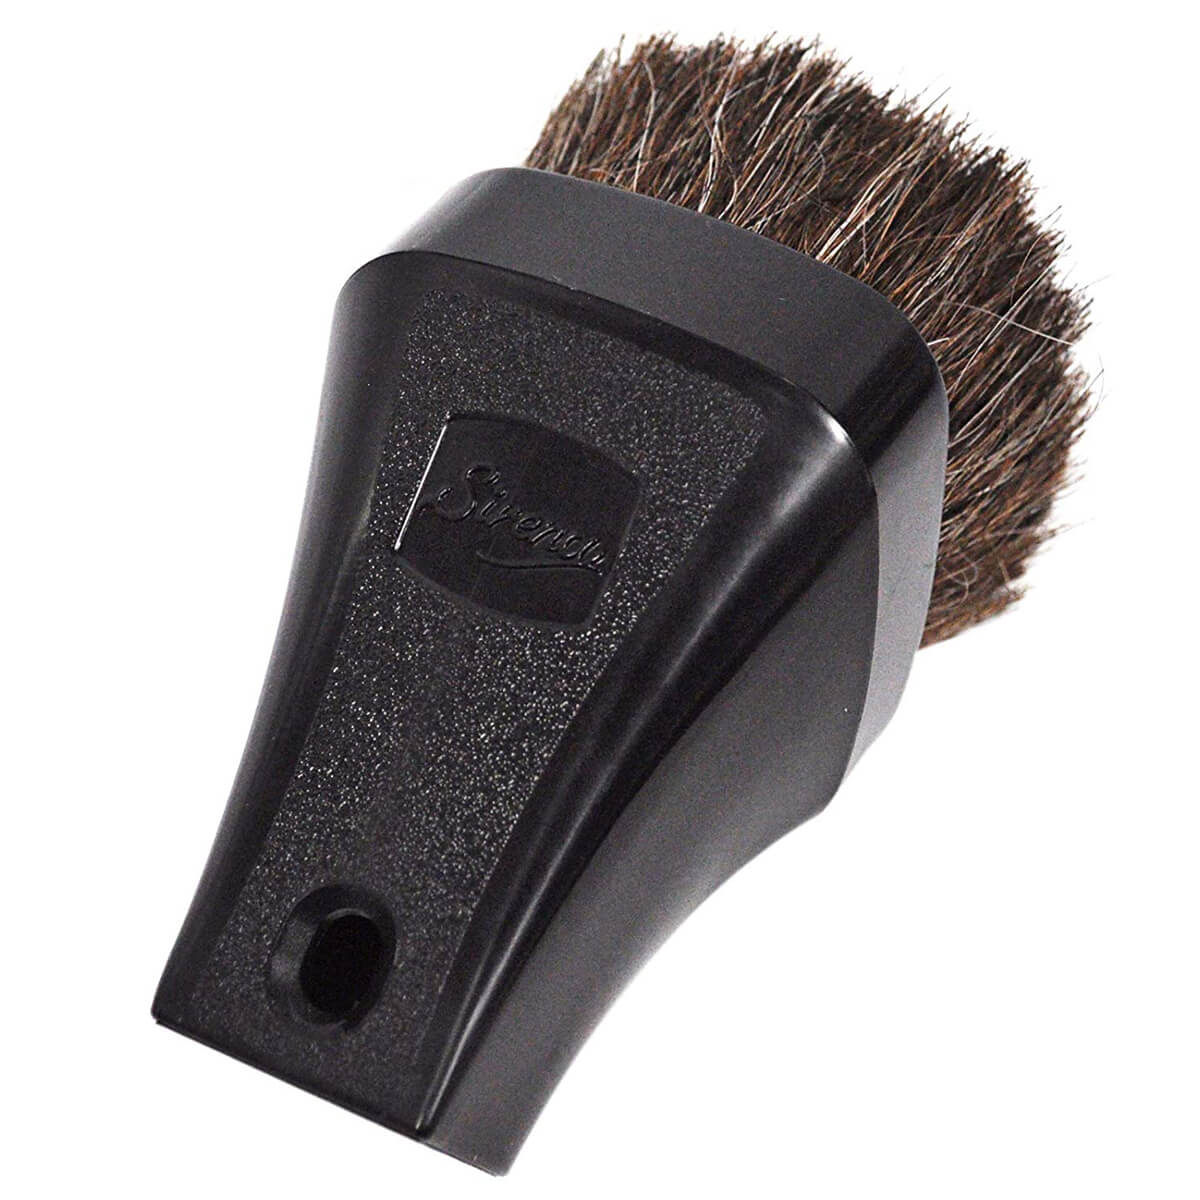 Sirena Dusting Brush (Complete)